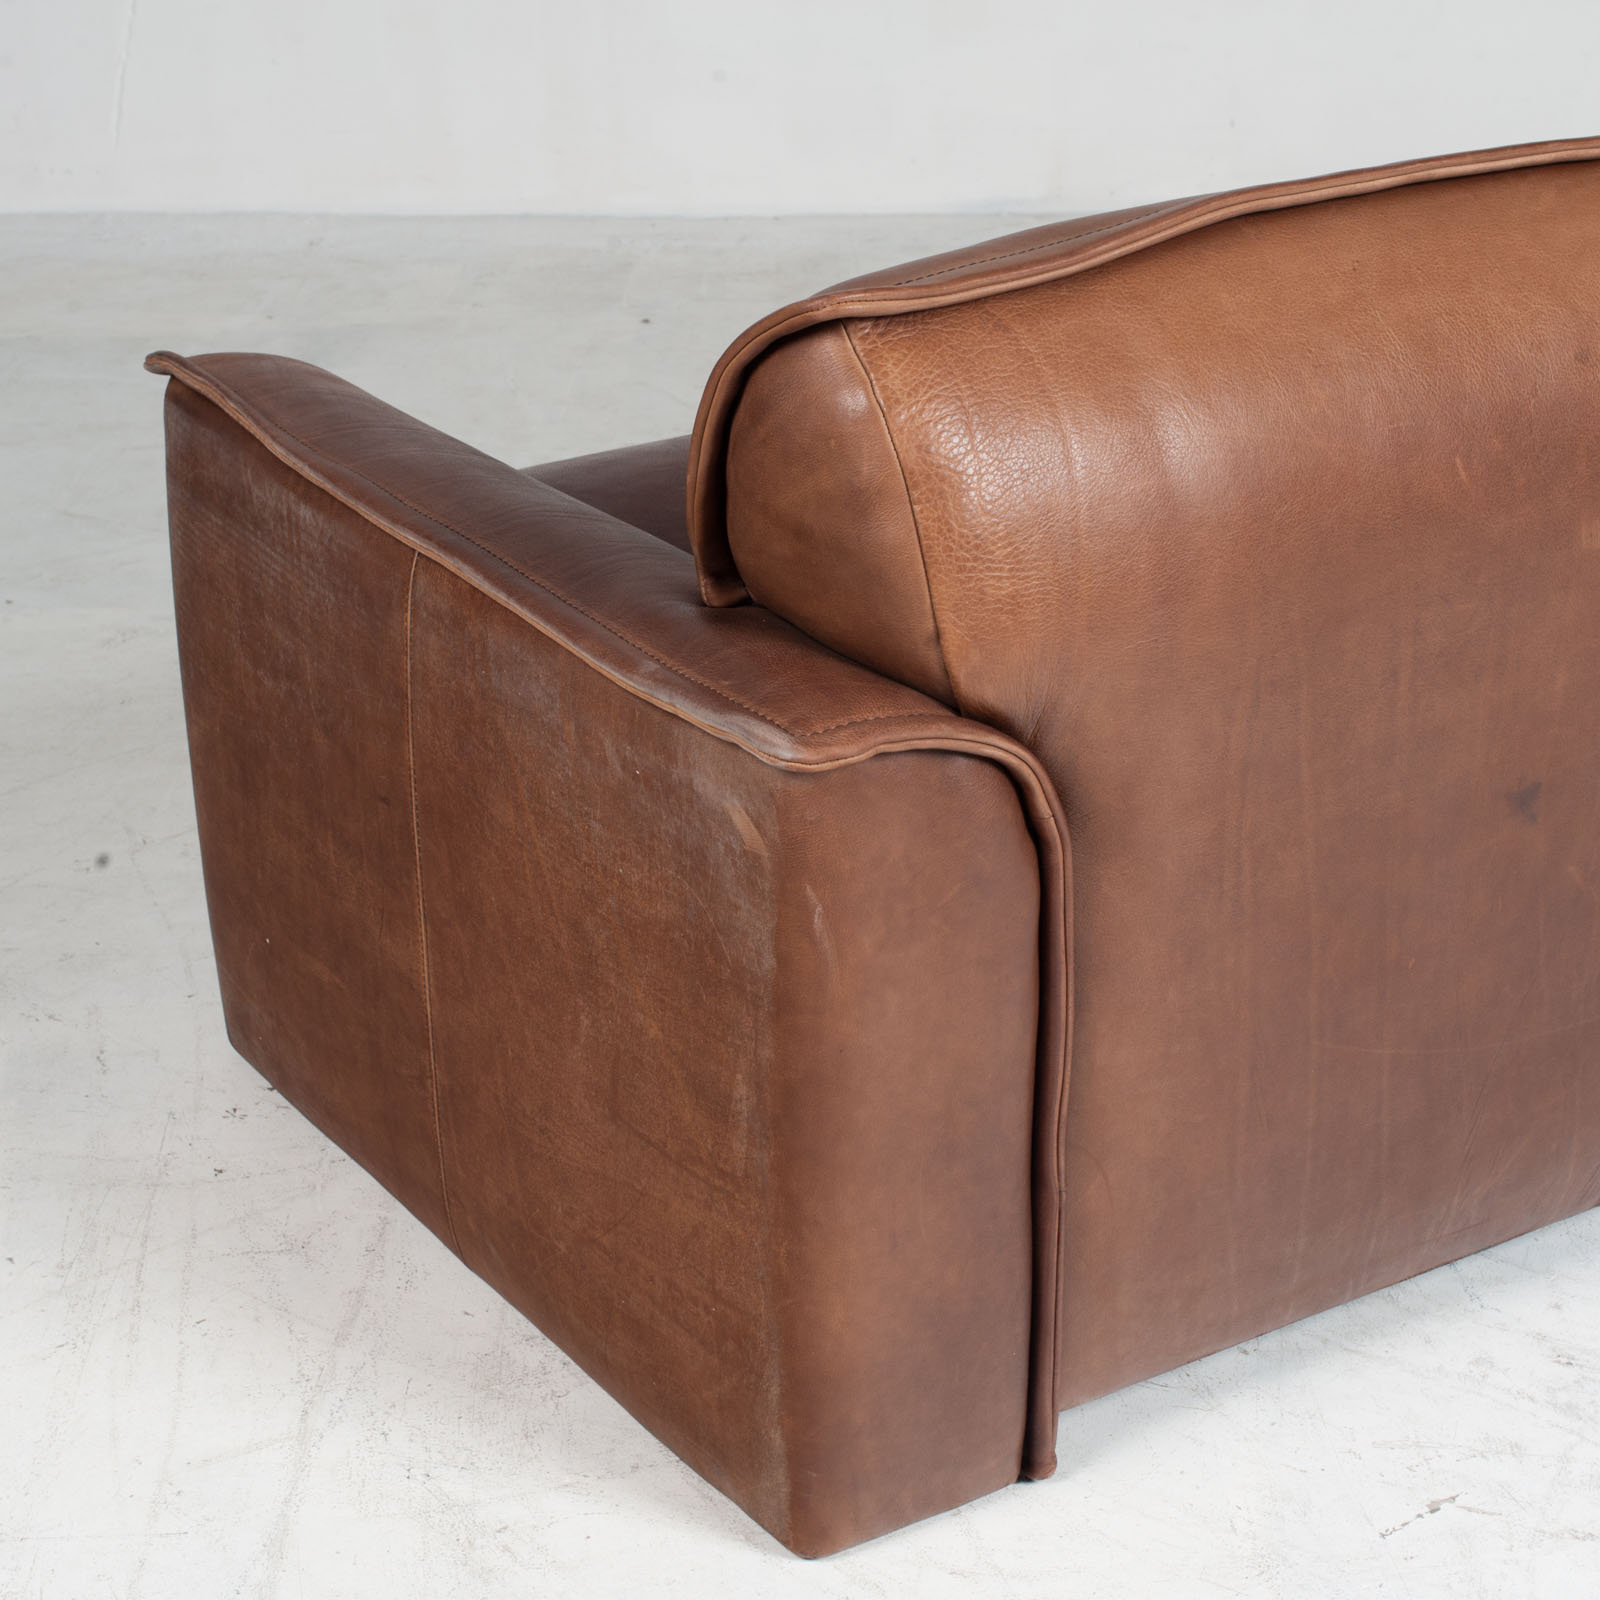 3 Seat Sofa By De Sede In Tan Neck Leather 1960s Denmark 014